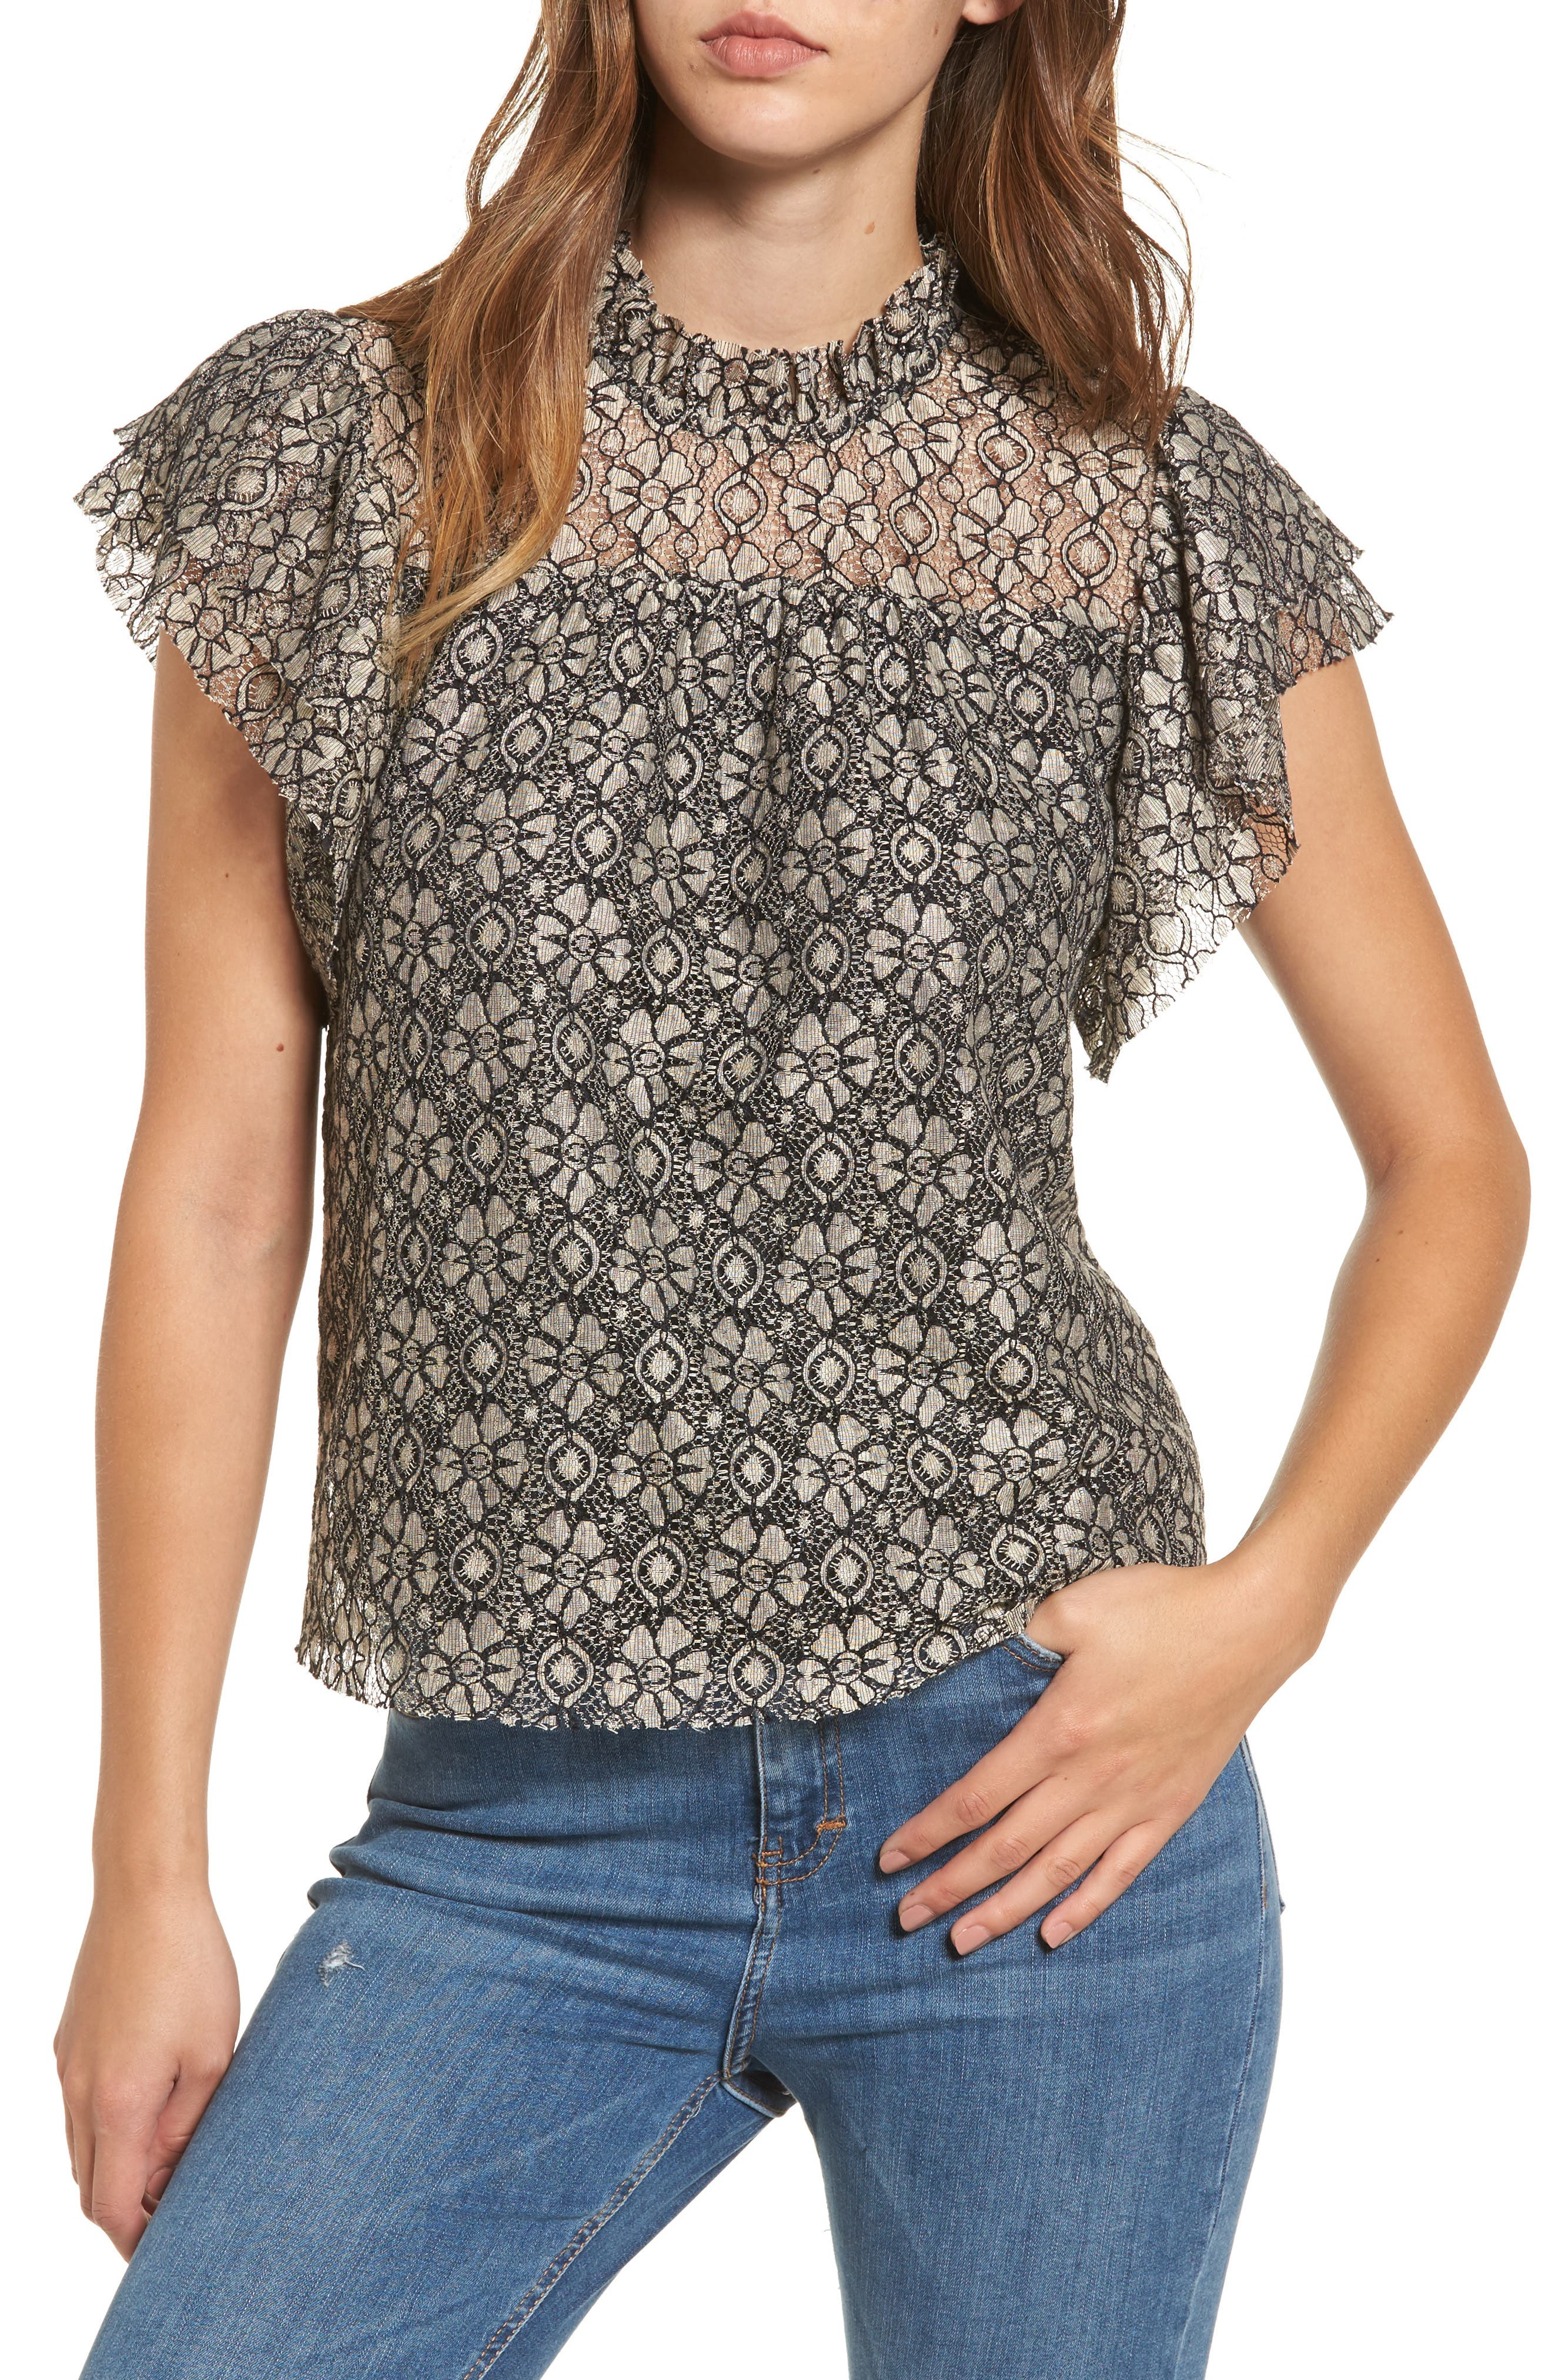 Alternate Image 1 Selected - Moon River Ruffle Lace Top